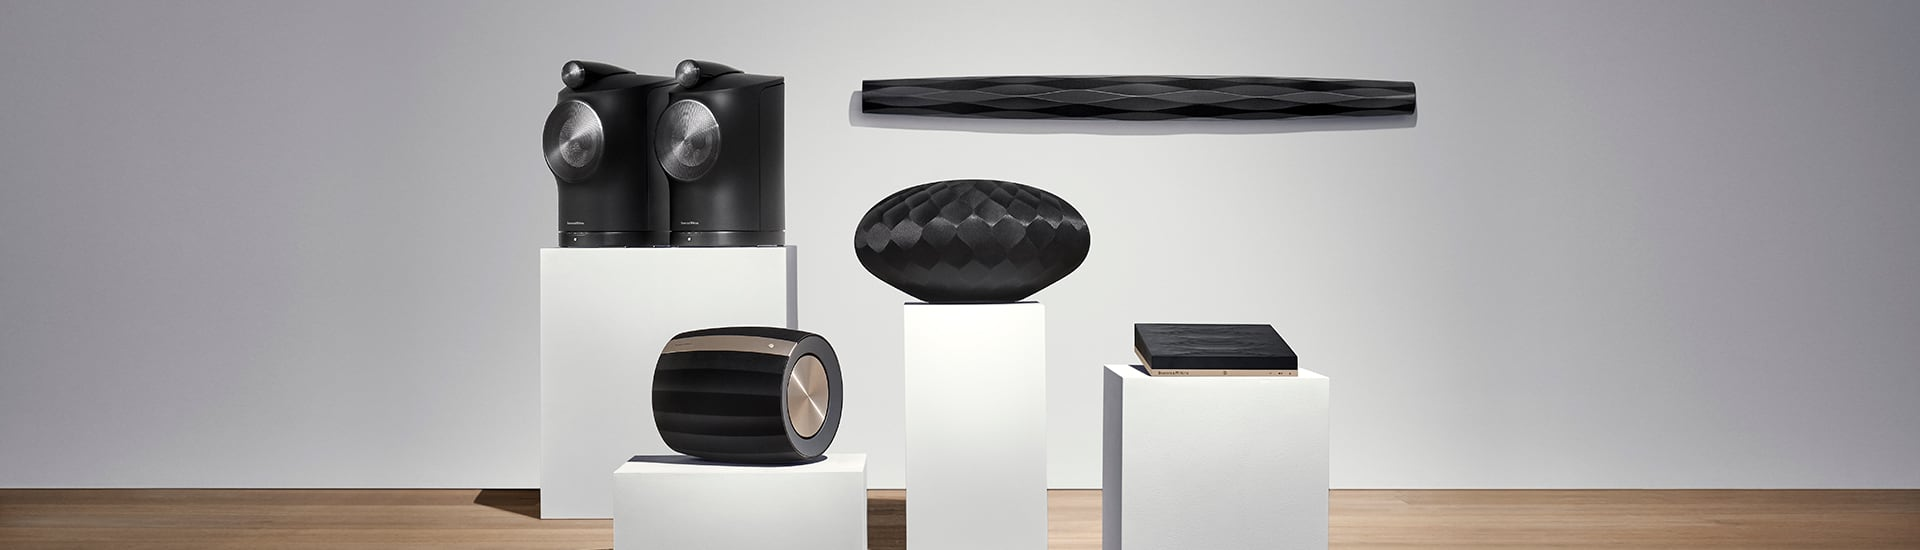 Review: Bowers & Wilkins Formation Audio